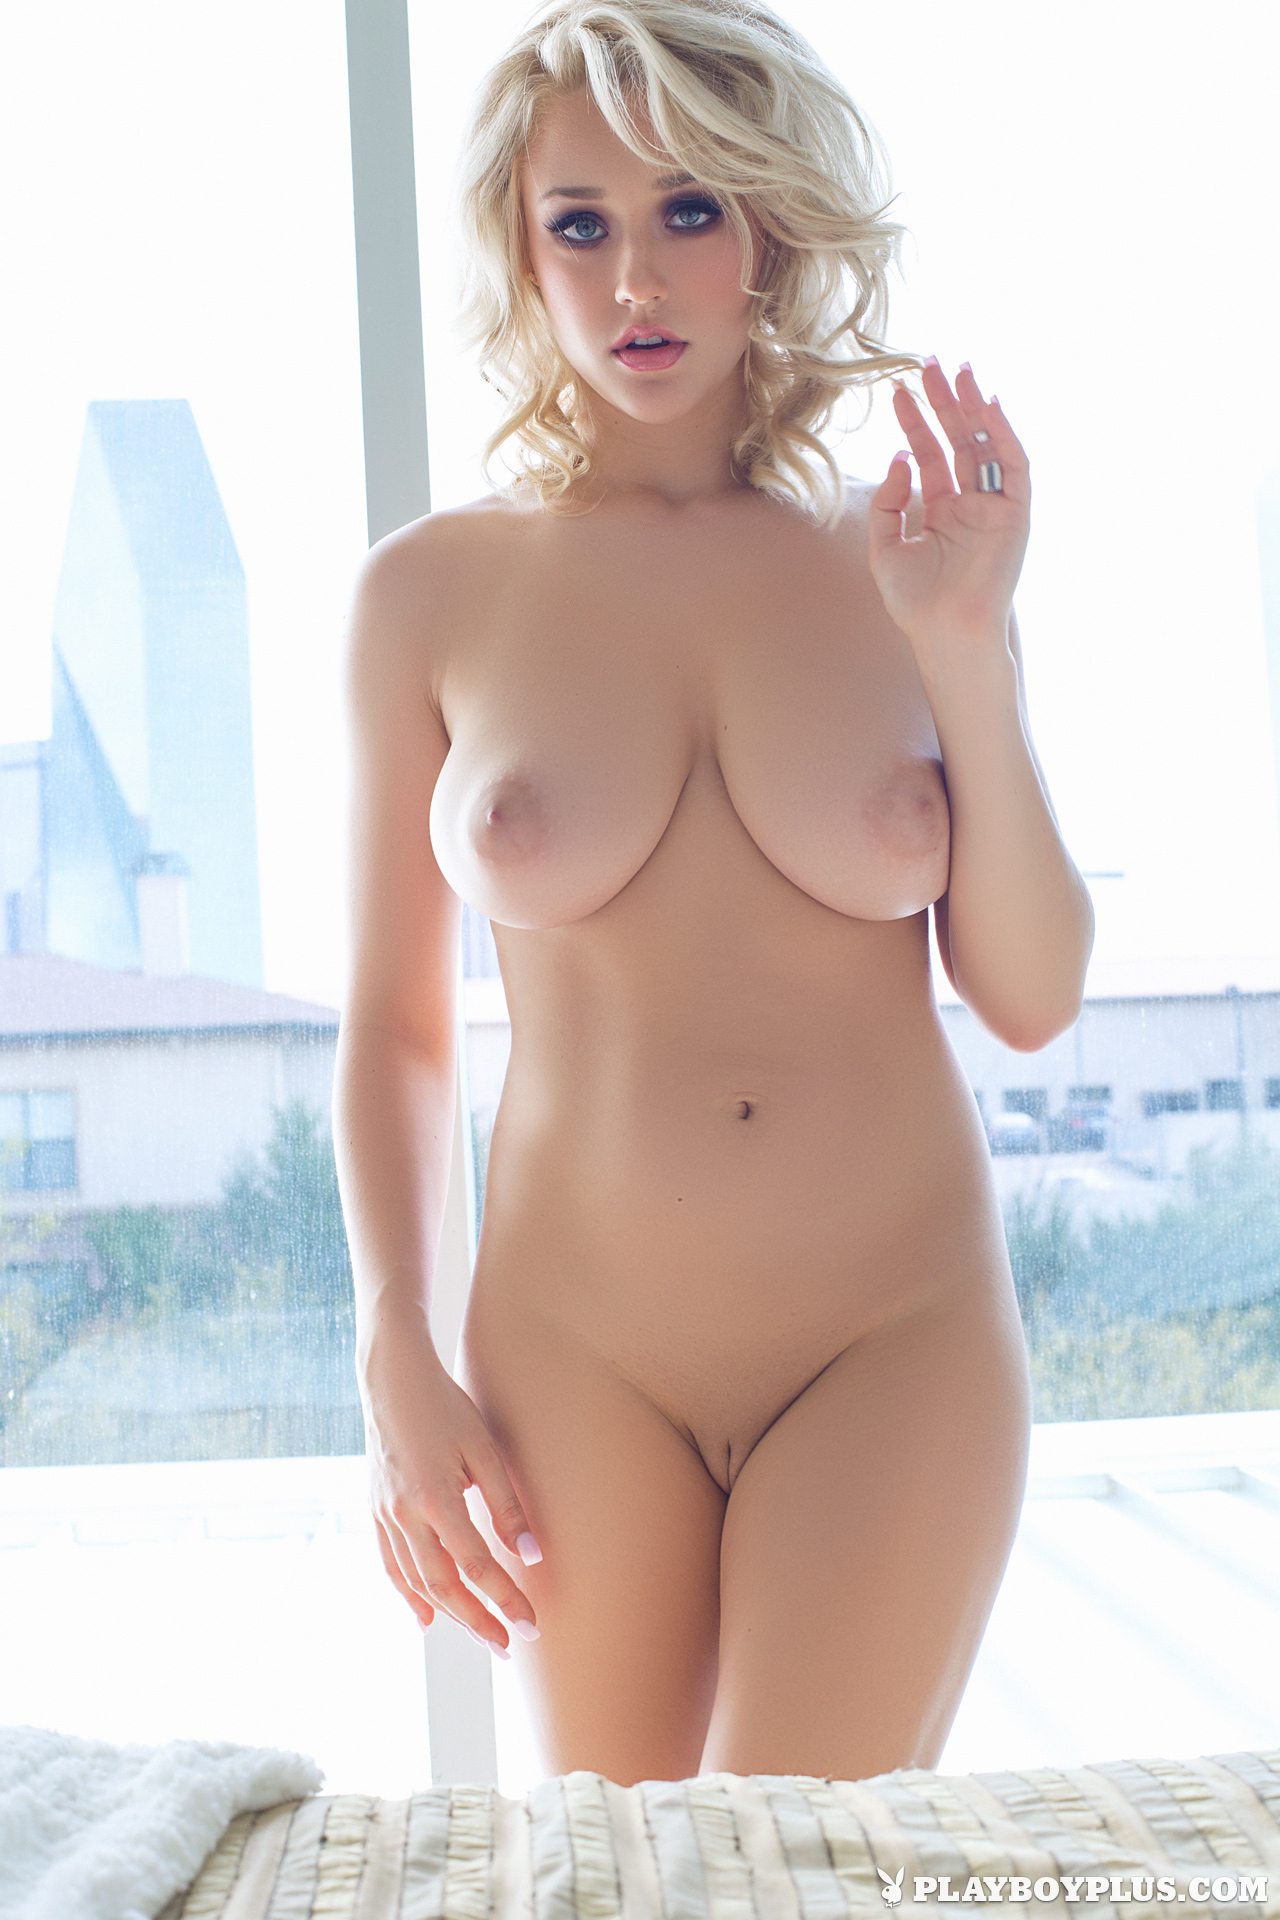 ana big tits video